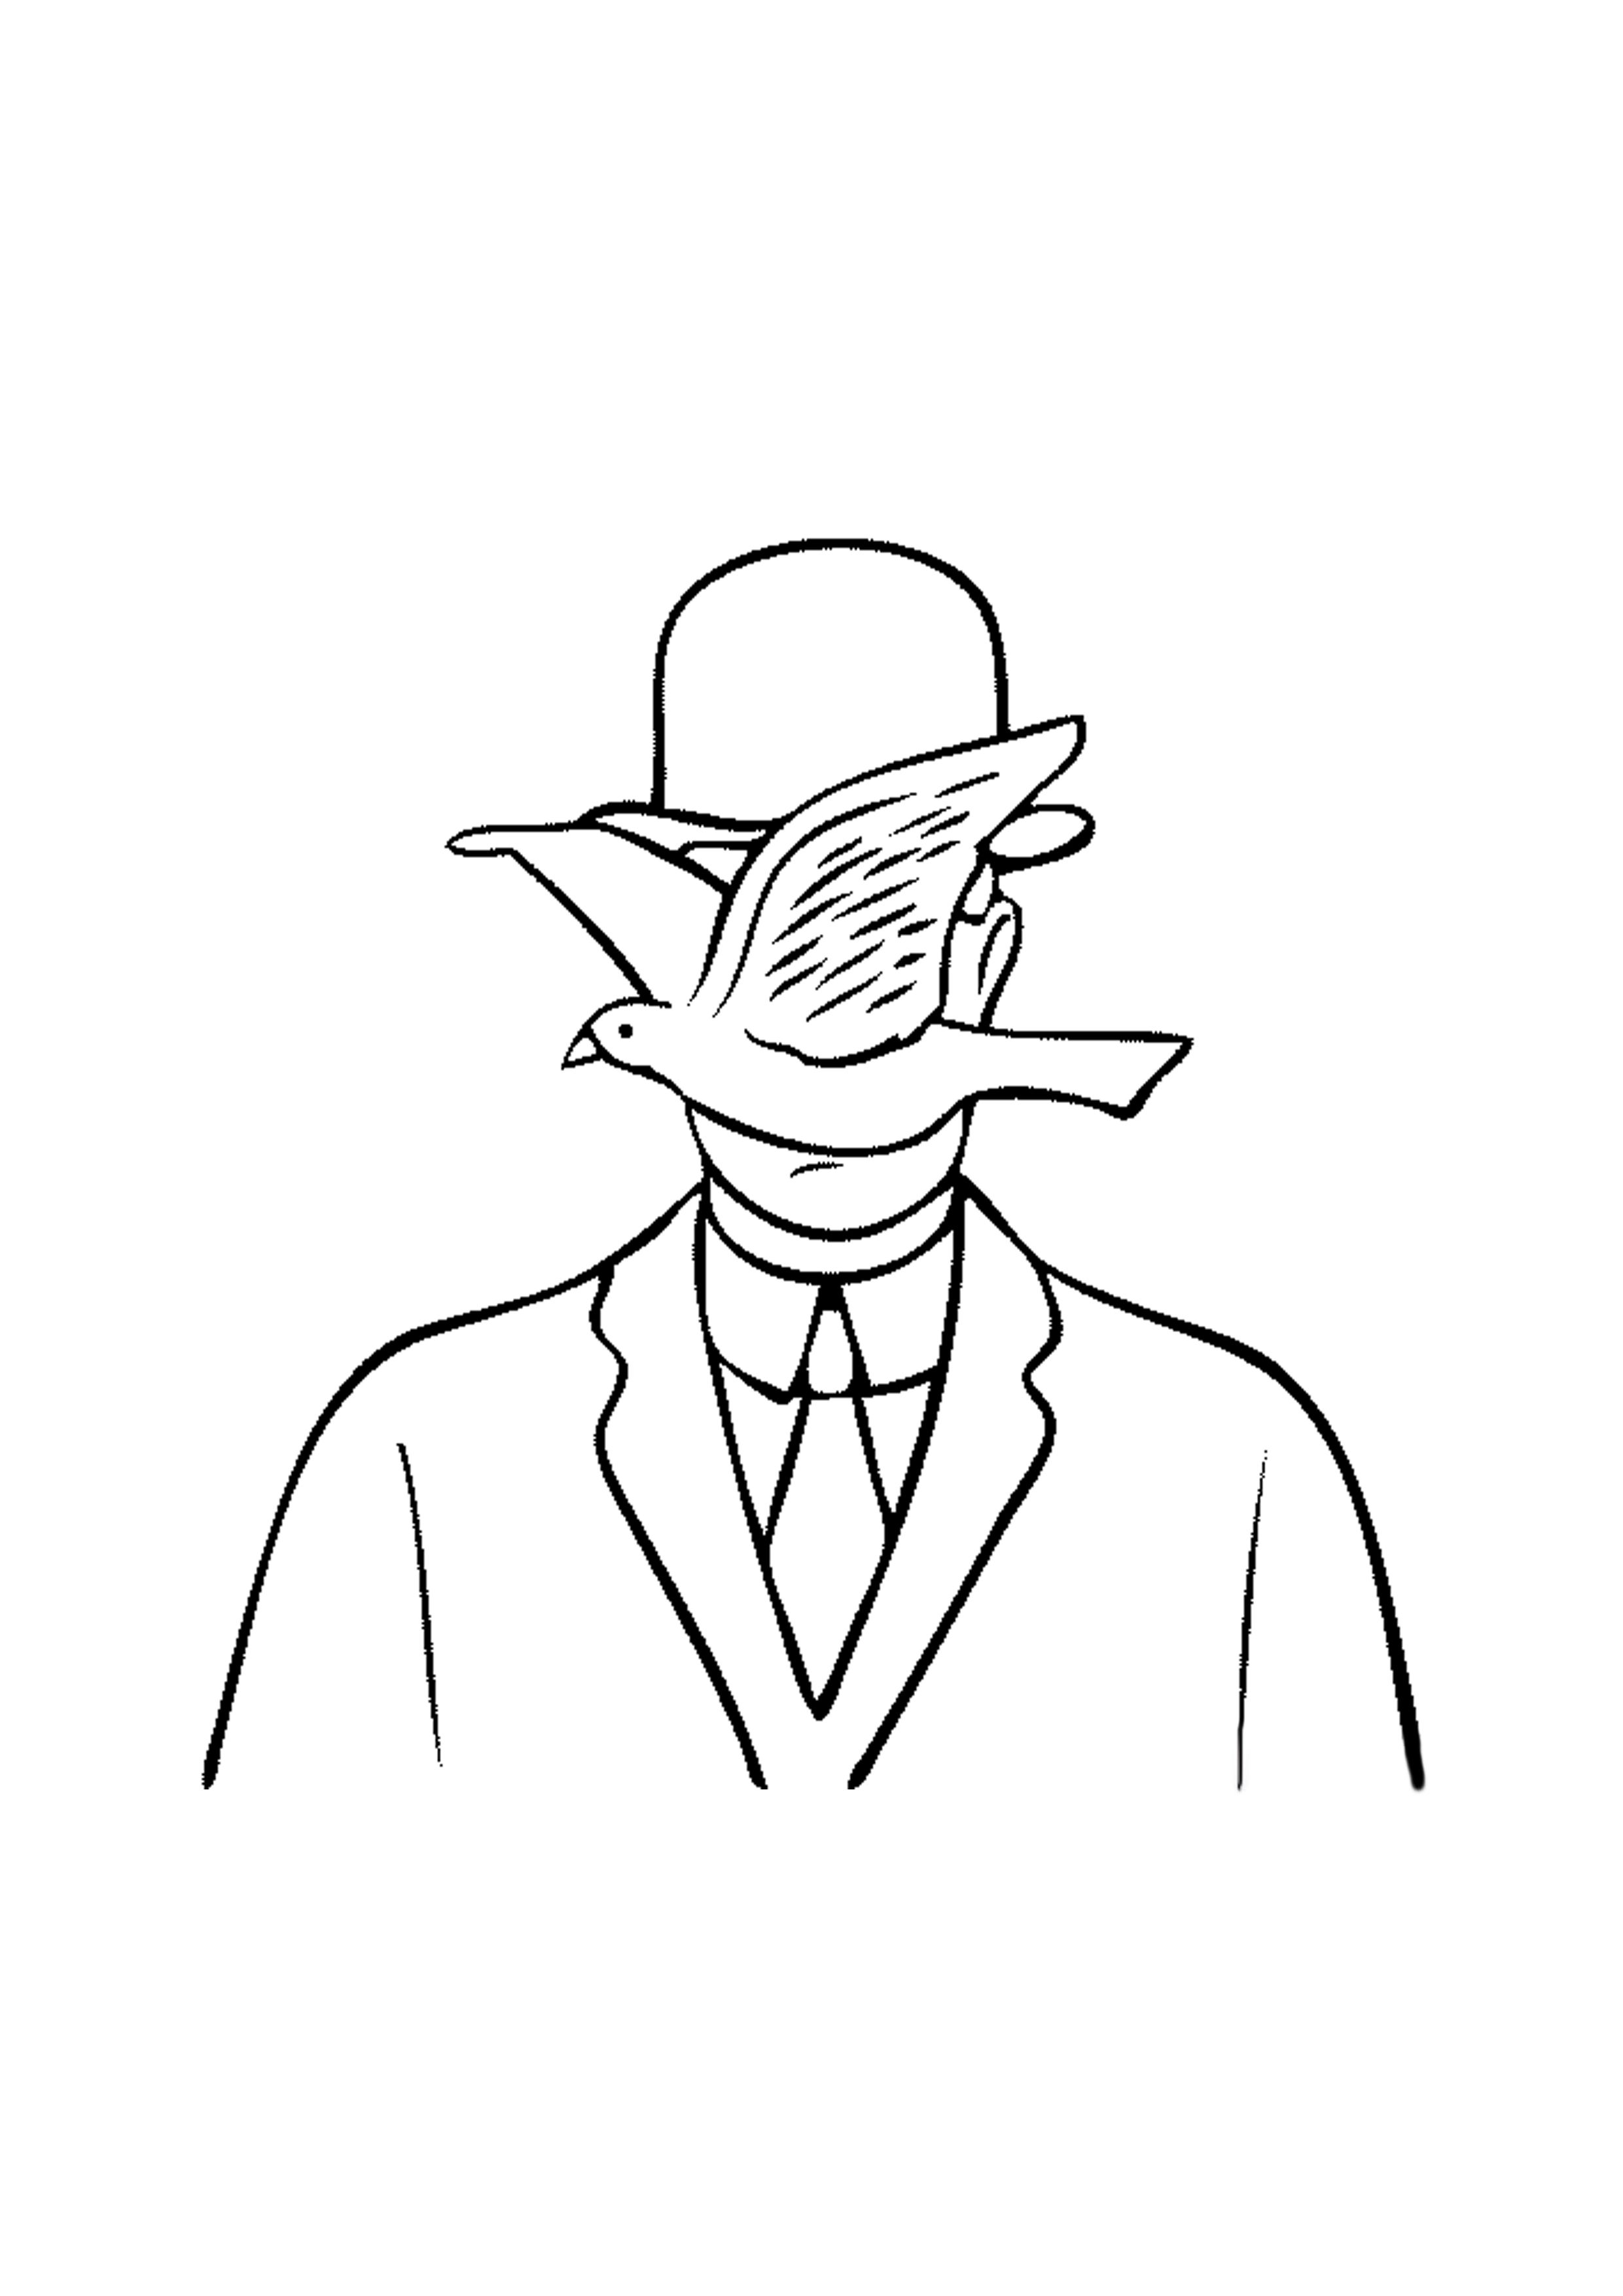 rene magritte coloring pages - photo#20